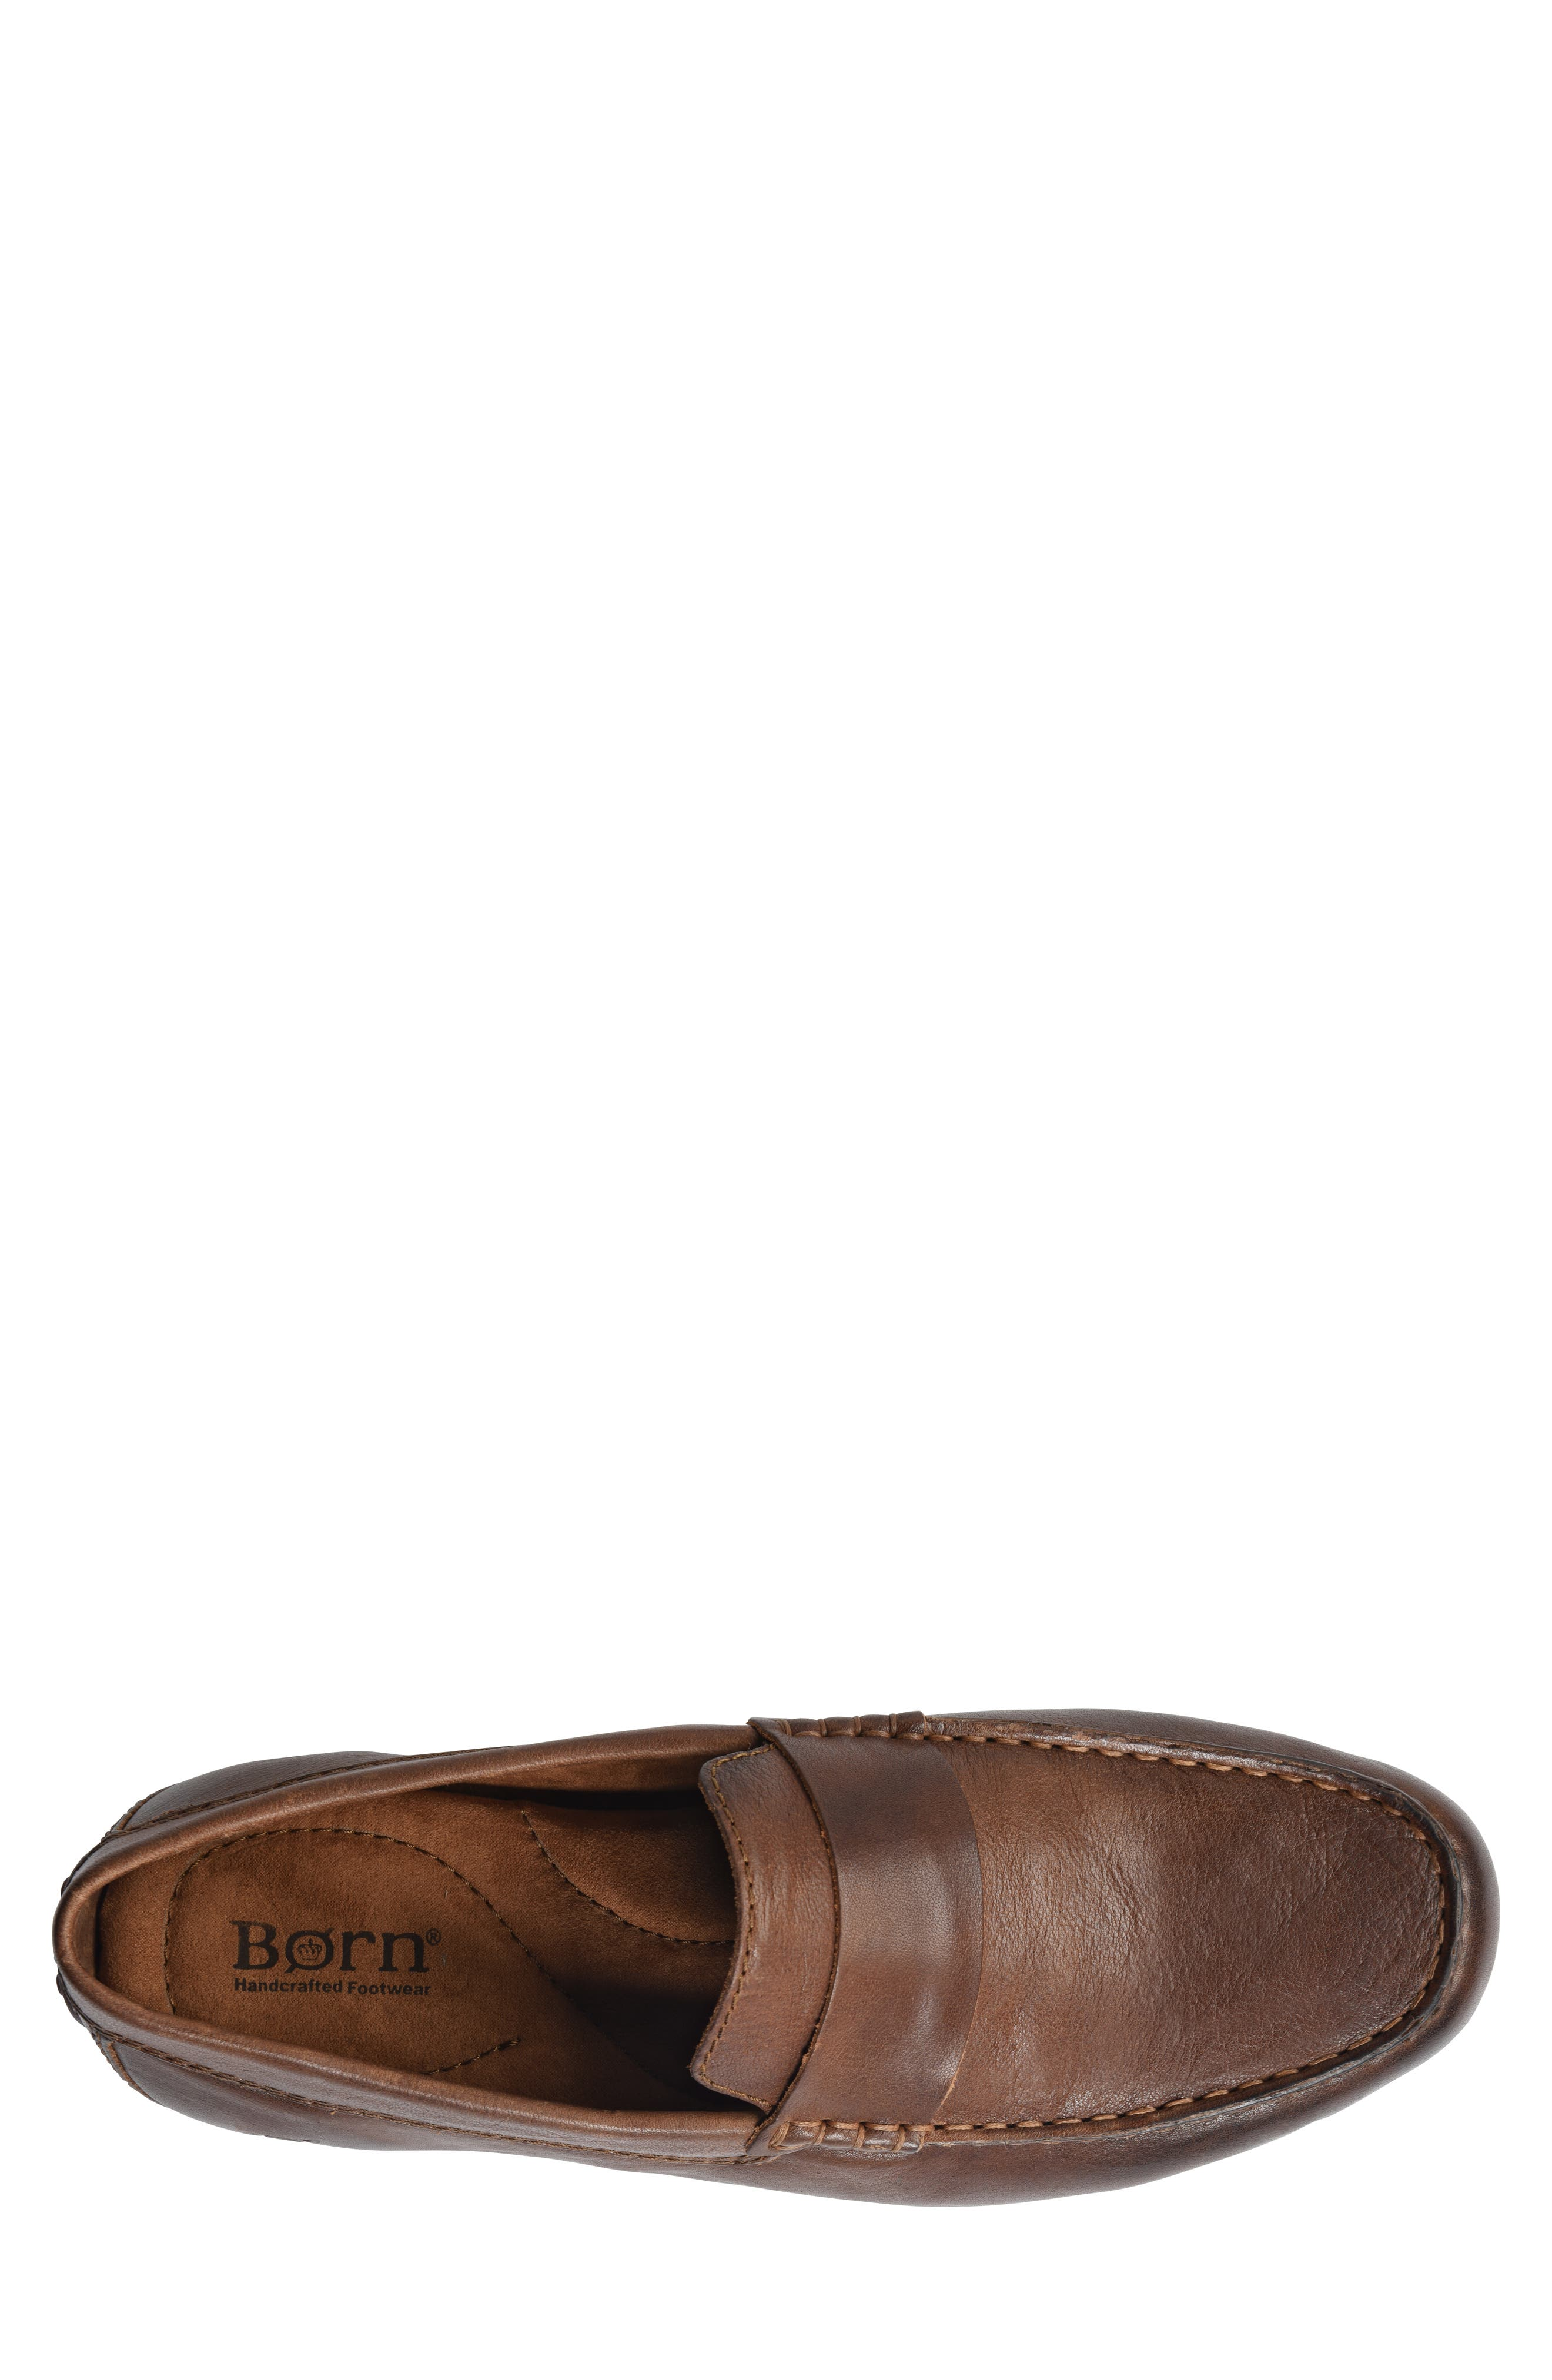 Ratner Driving Loafer,                             Alternate thumbnail 5, color,                             BROWN LEATHER